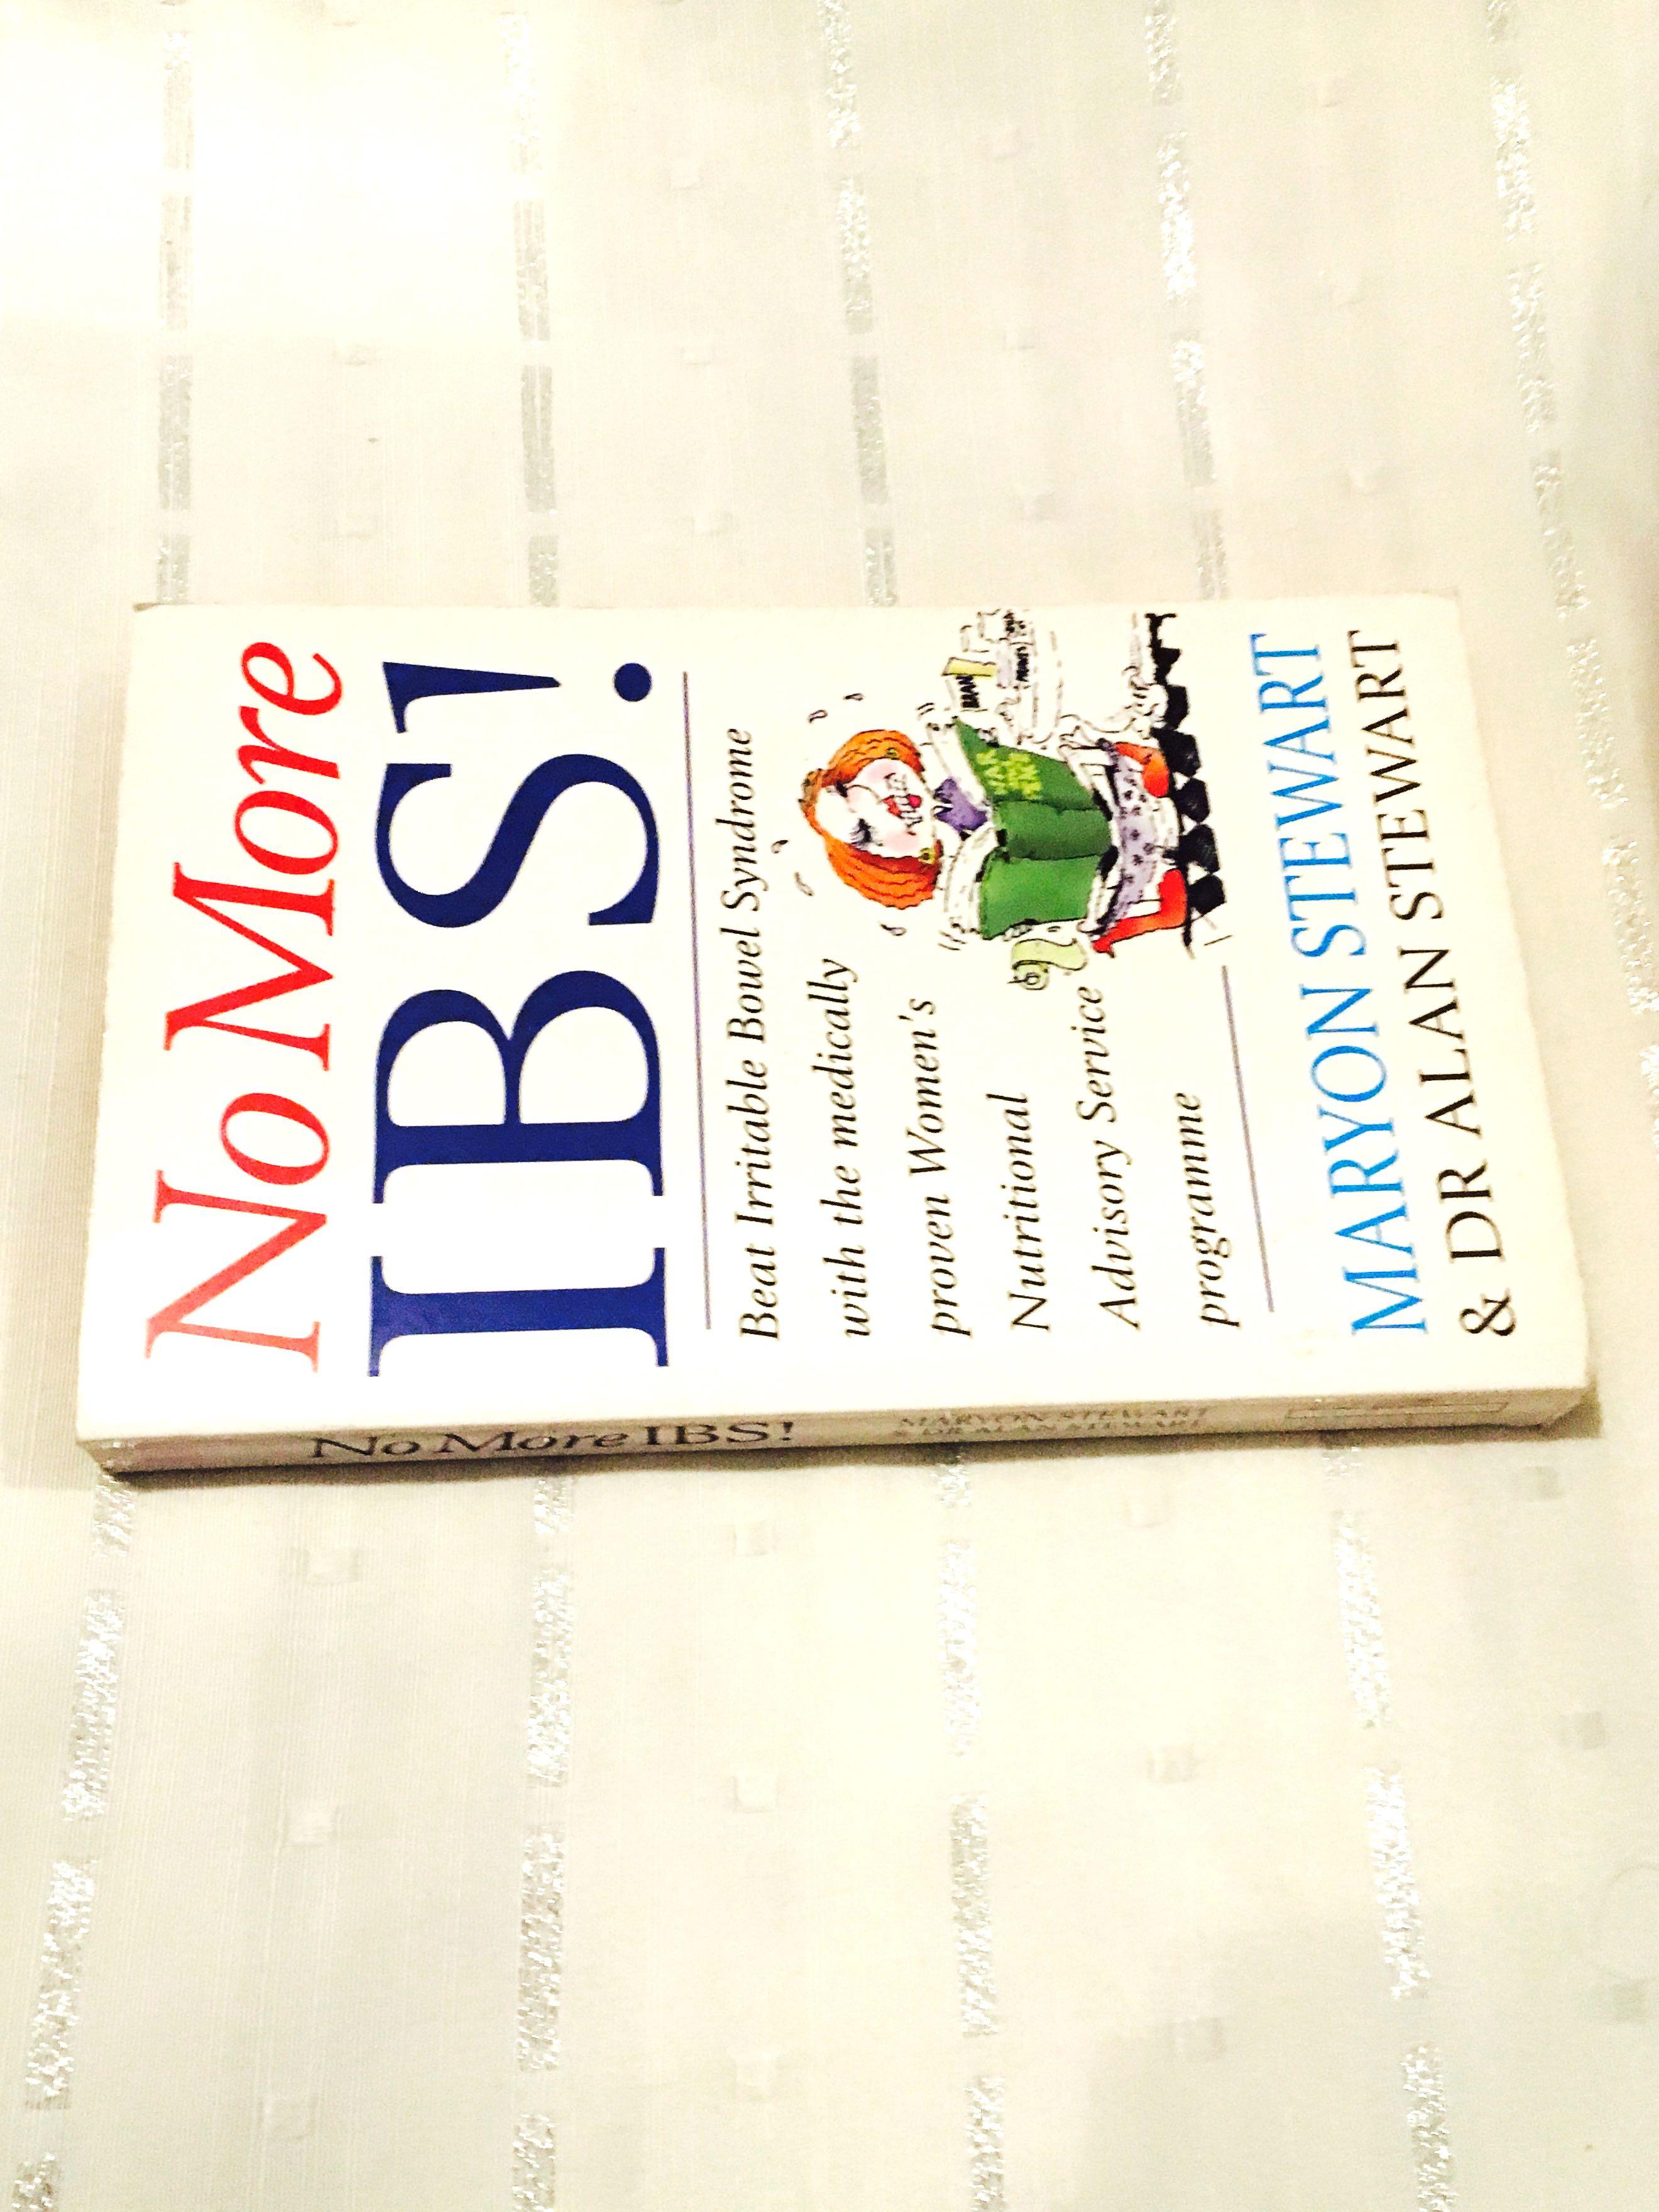 No More IBS! by Maryon Stewart Dr Alan Stewart Health Book